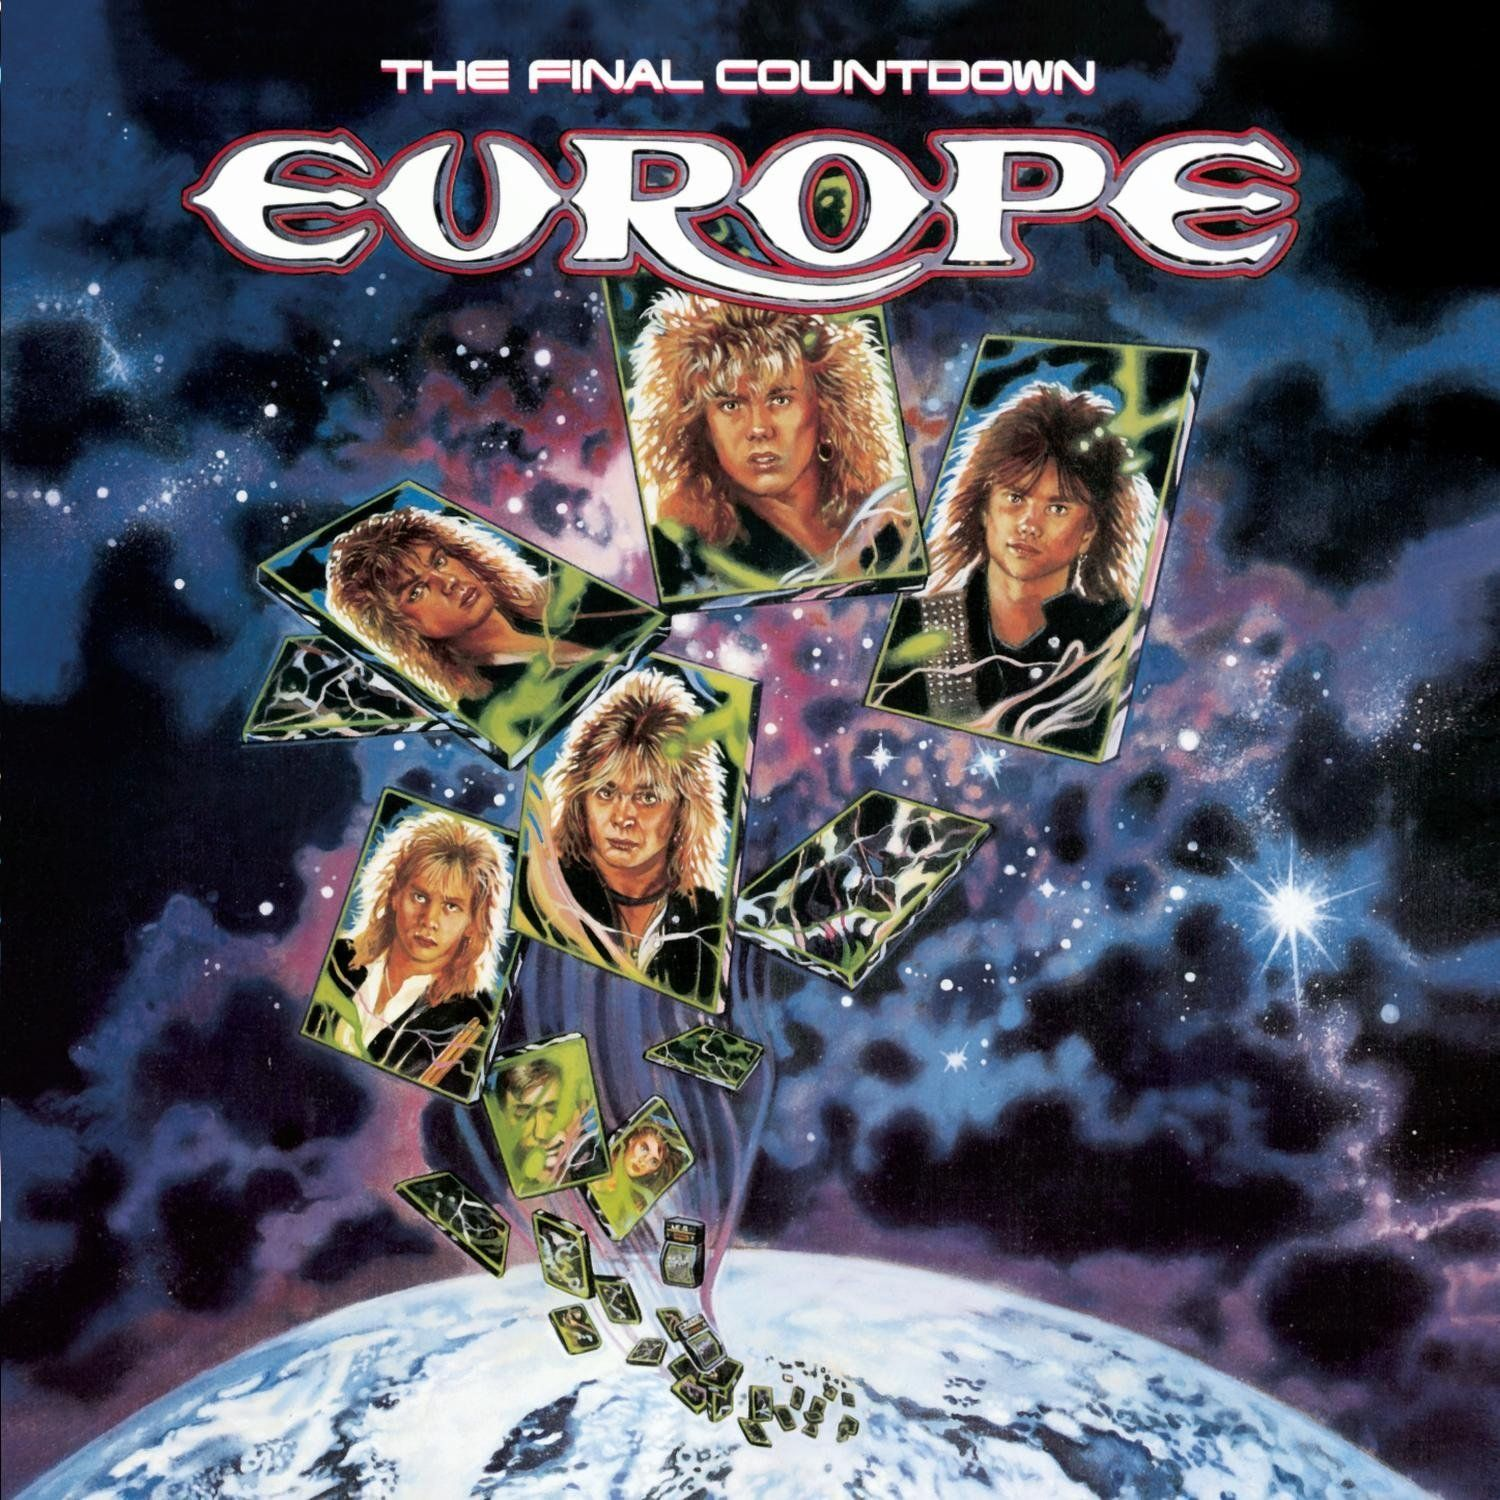 Europe Cover The Final Countdown The Final Countdown Worst Album Covers Europe Band